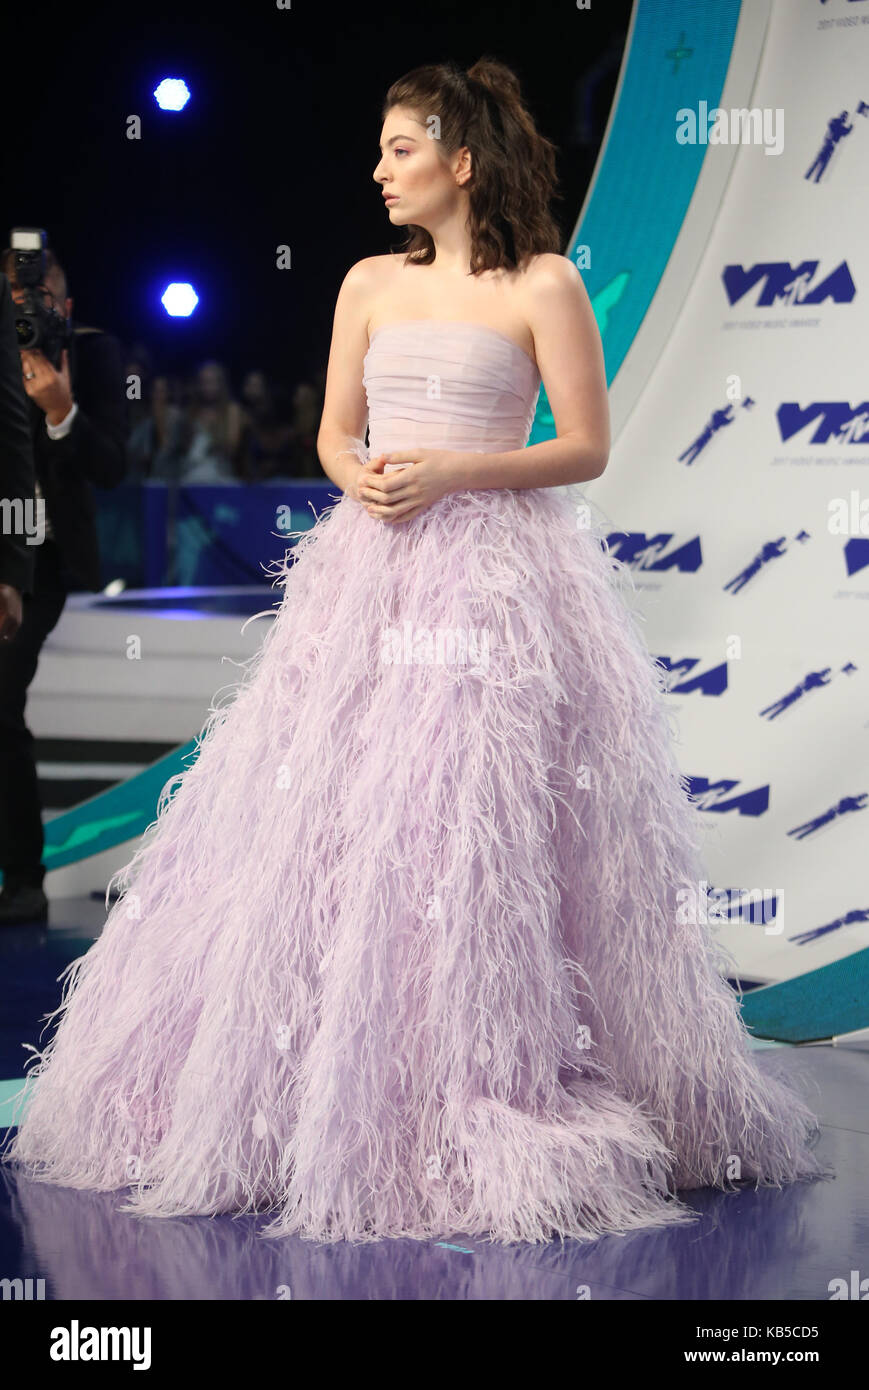 Pastel Lilac Ball Gown Feather Strapless Dress Stock Photos & Pastel ...